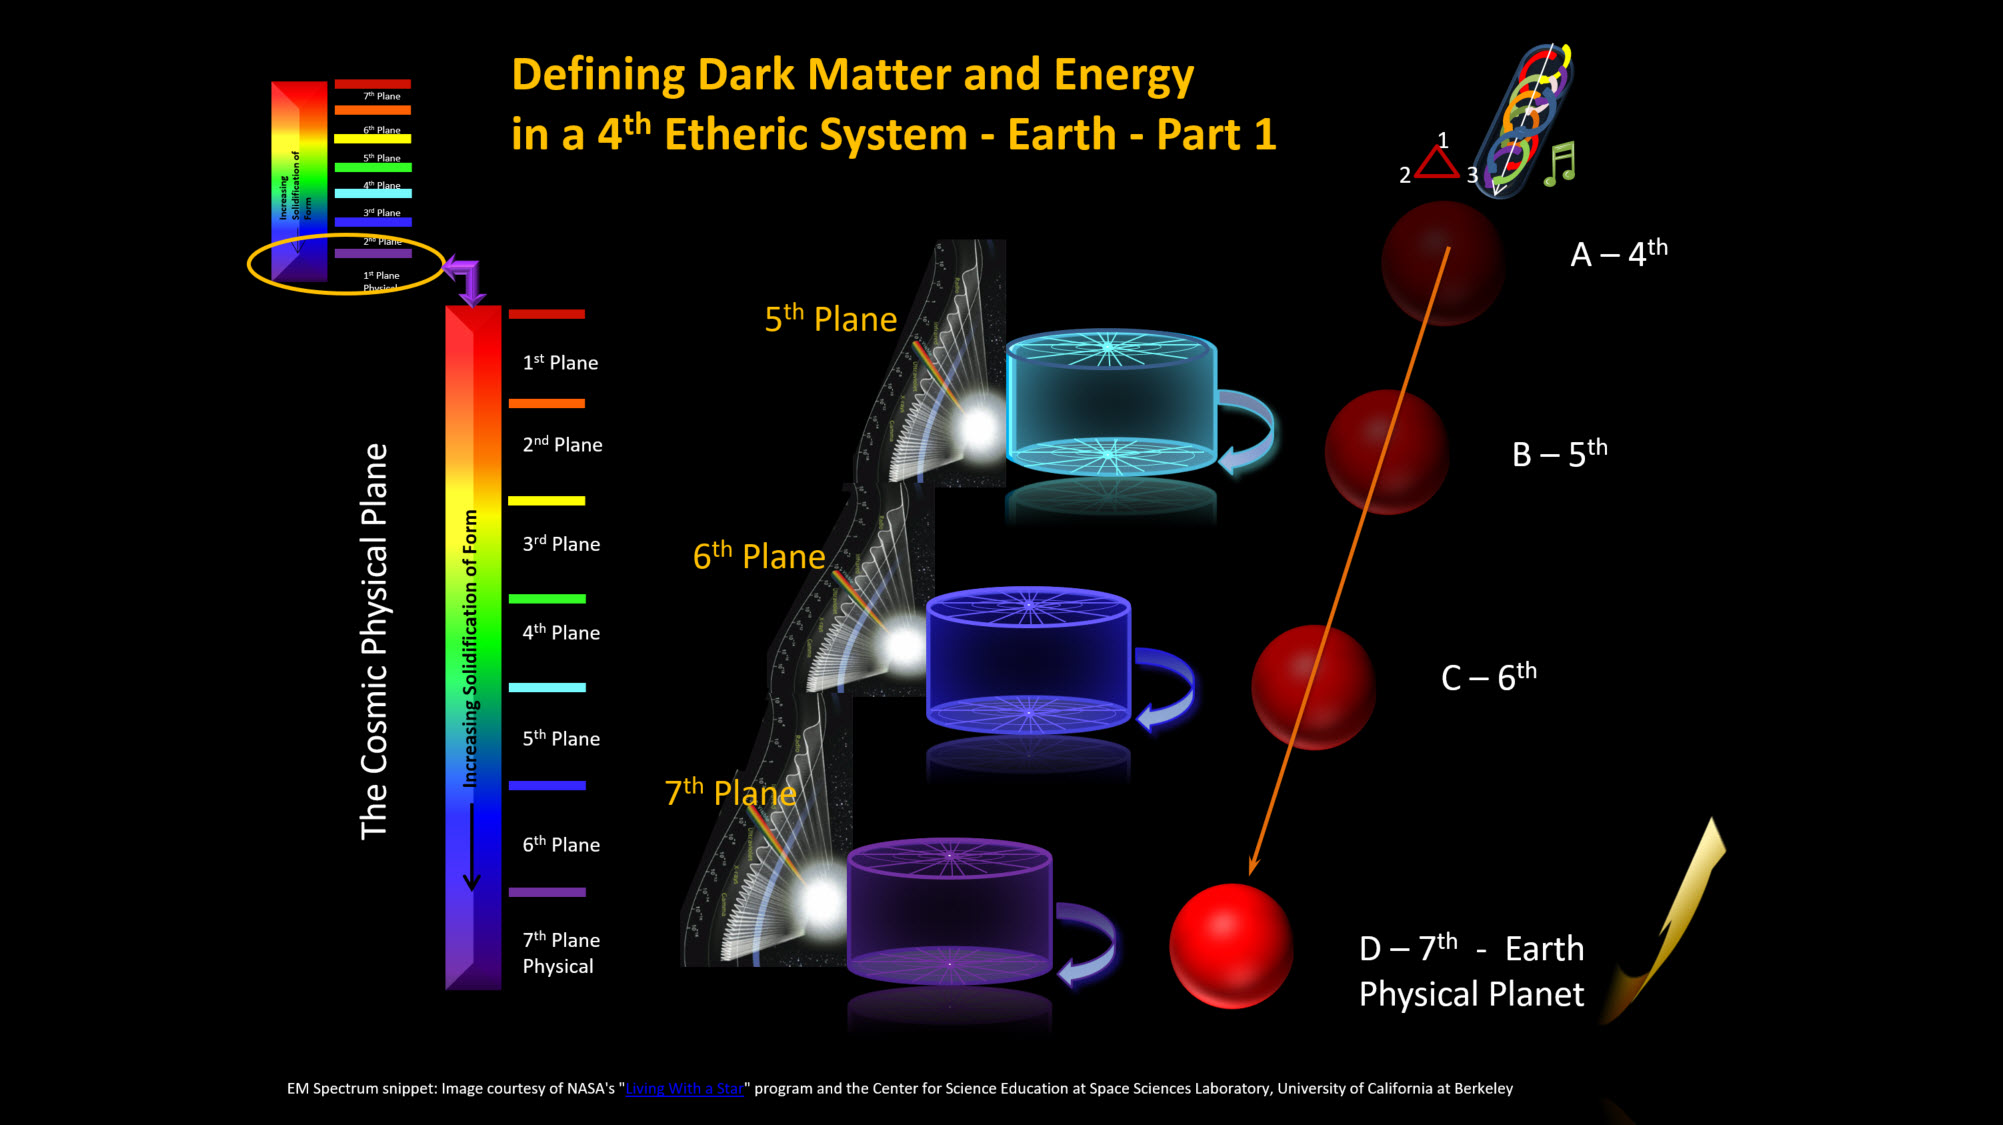 Defining Dark Matter and Energy in a 4th Etheric System - Earth - Part 1